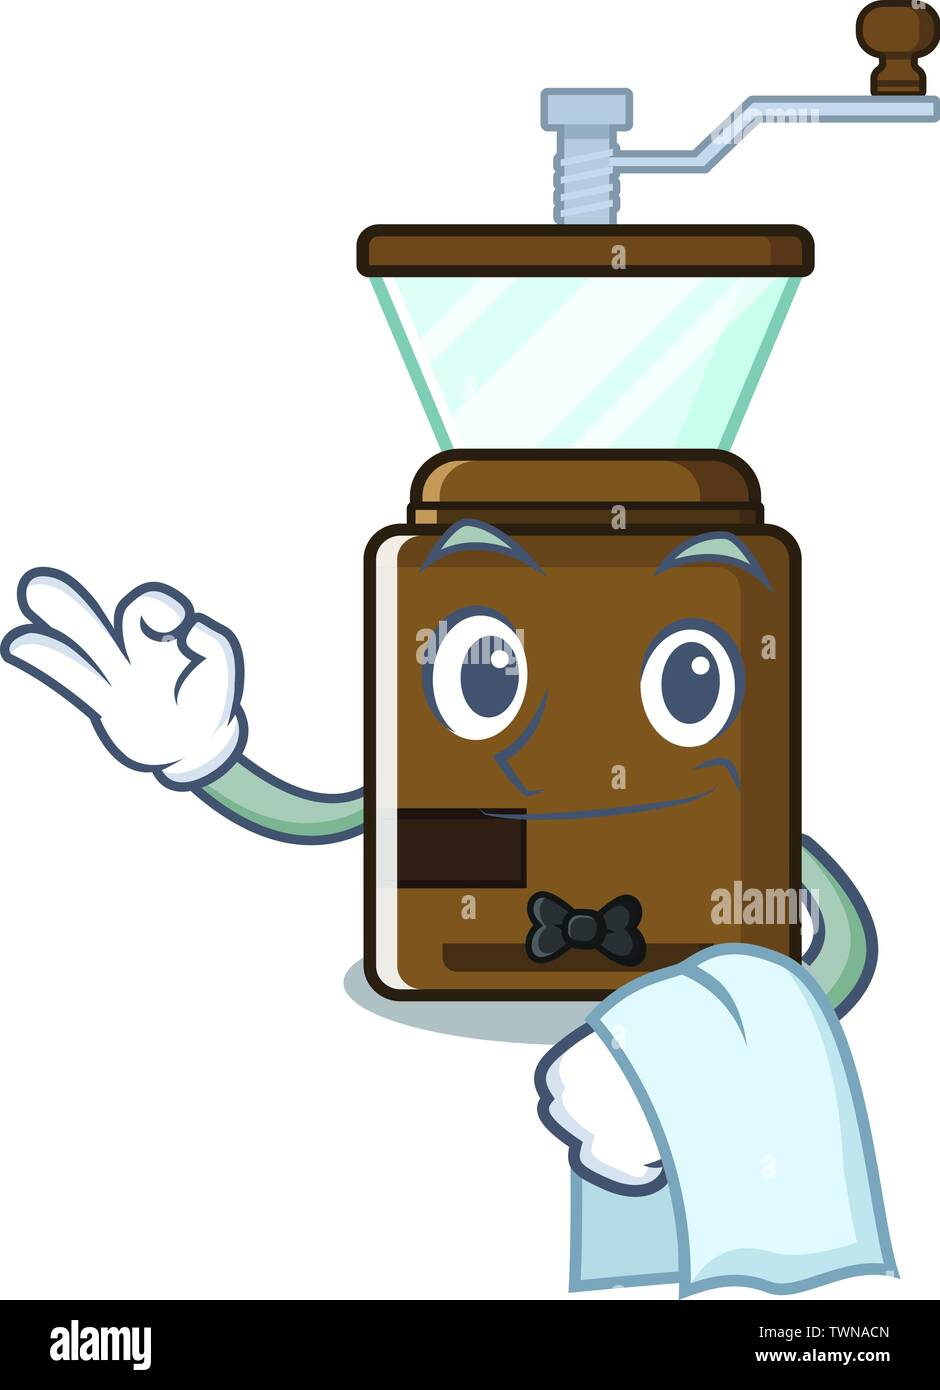 Waiter cartoon coffee grinder above wooden table - Stock Image